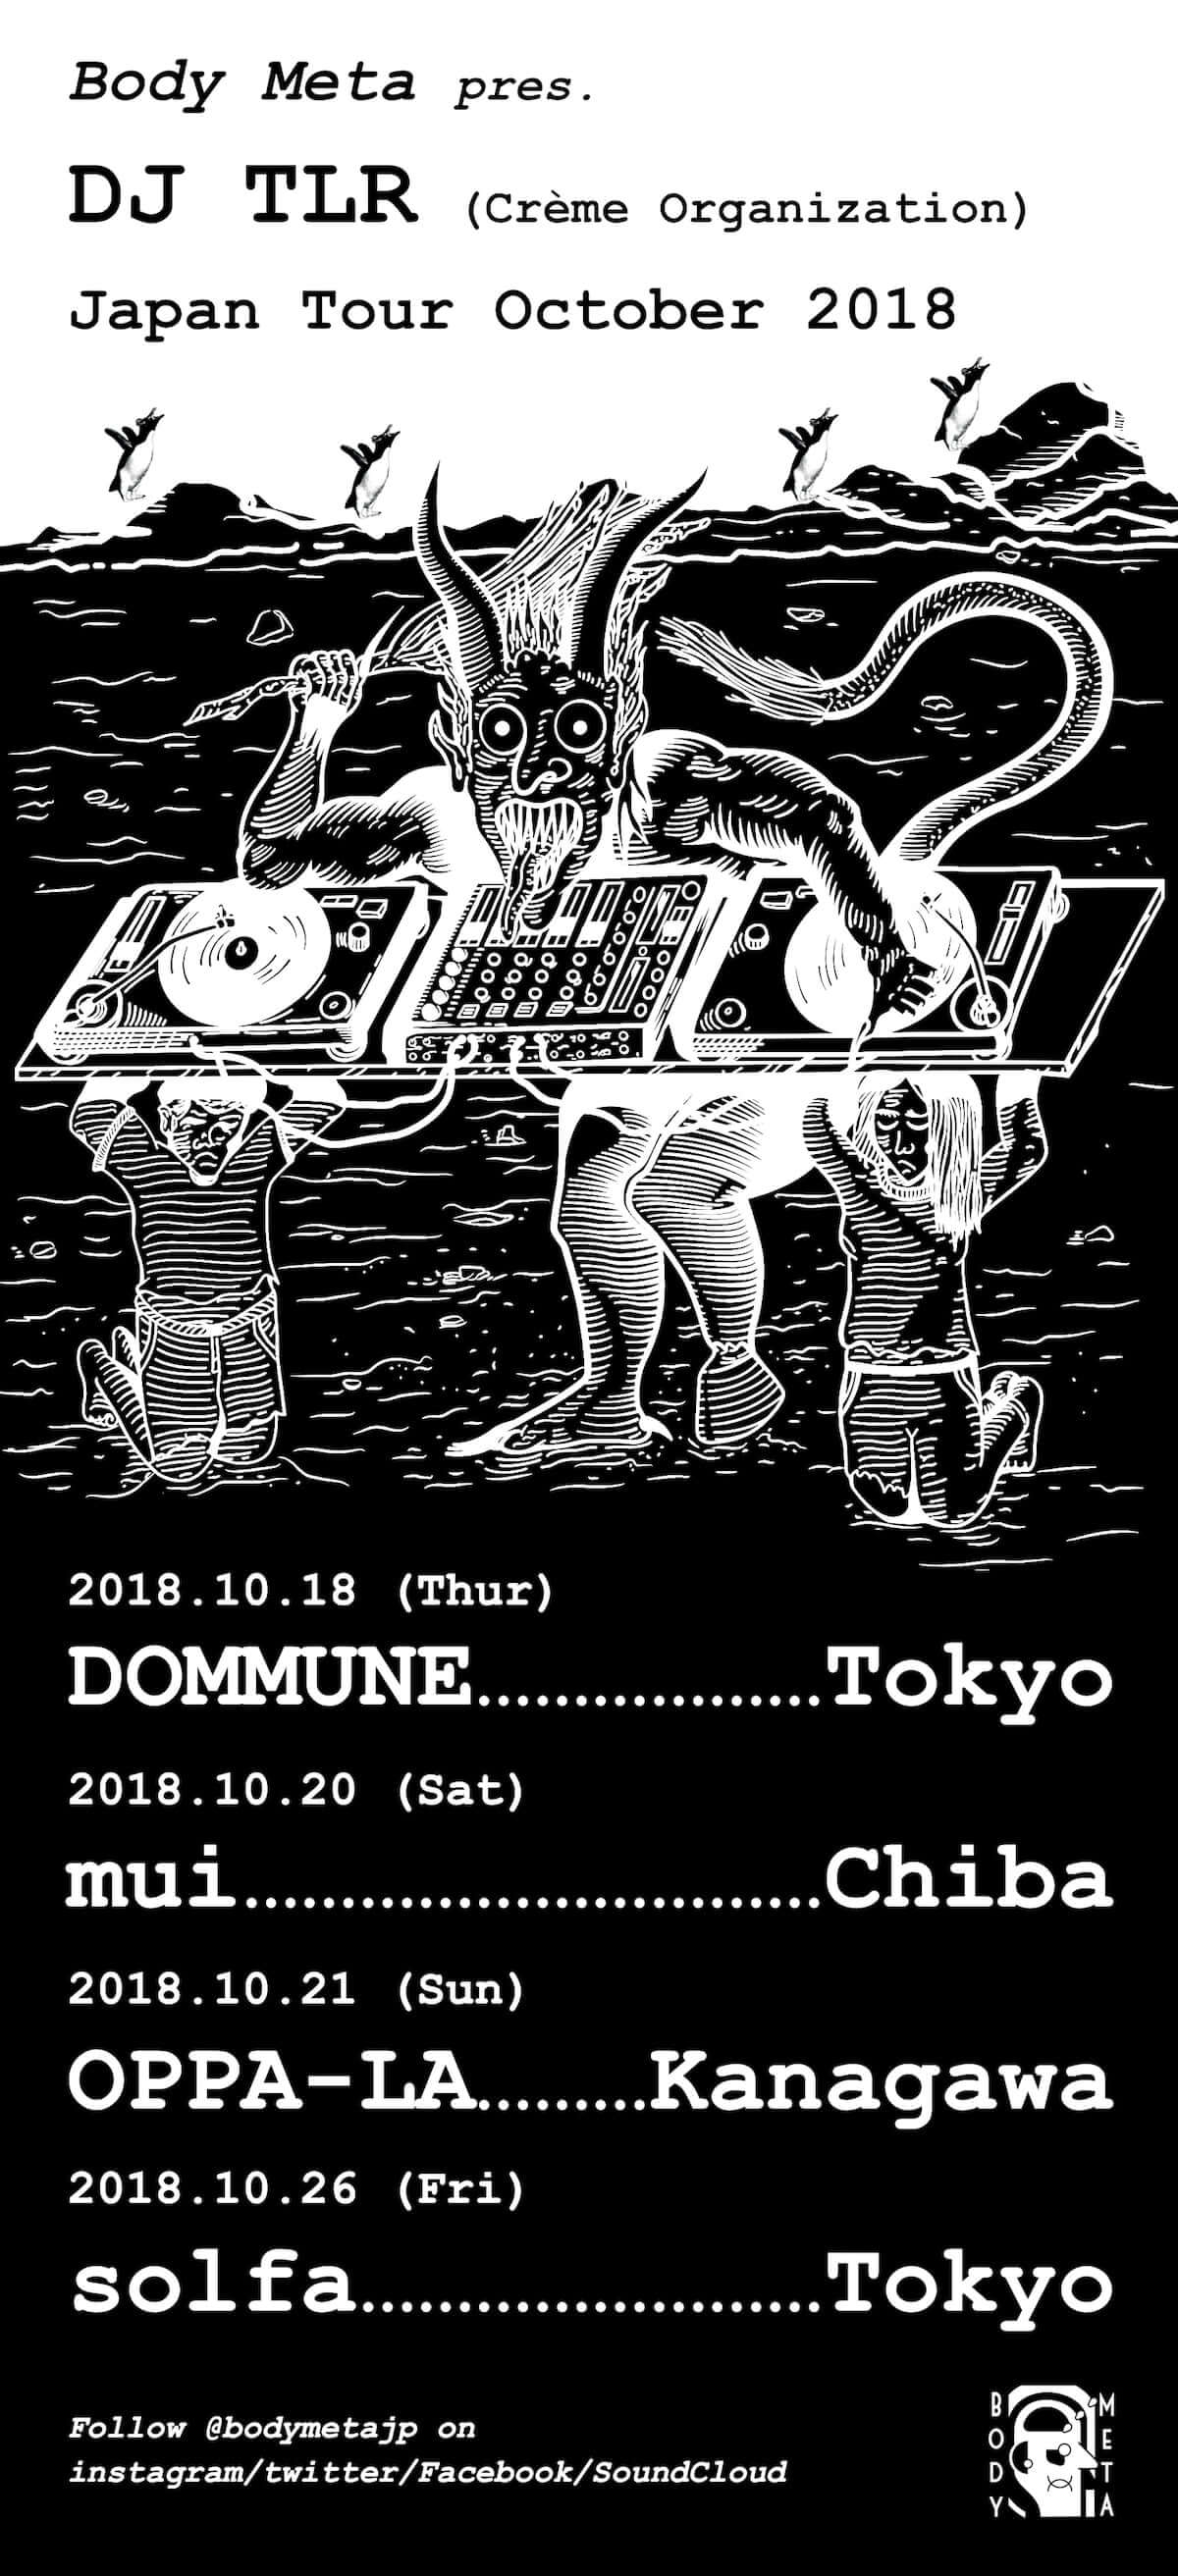 Body Meta presents DJ TLR Japan Tour October 2018